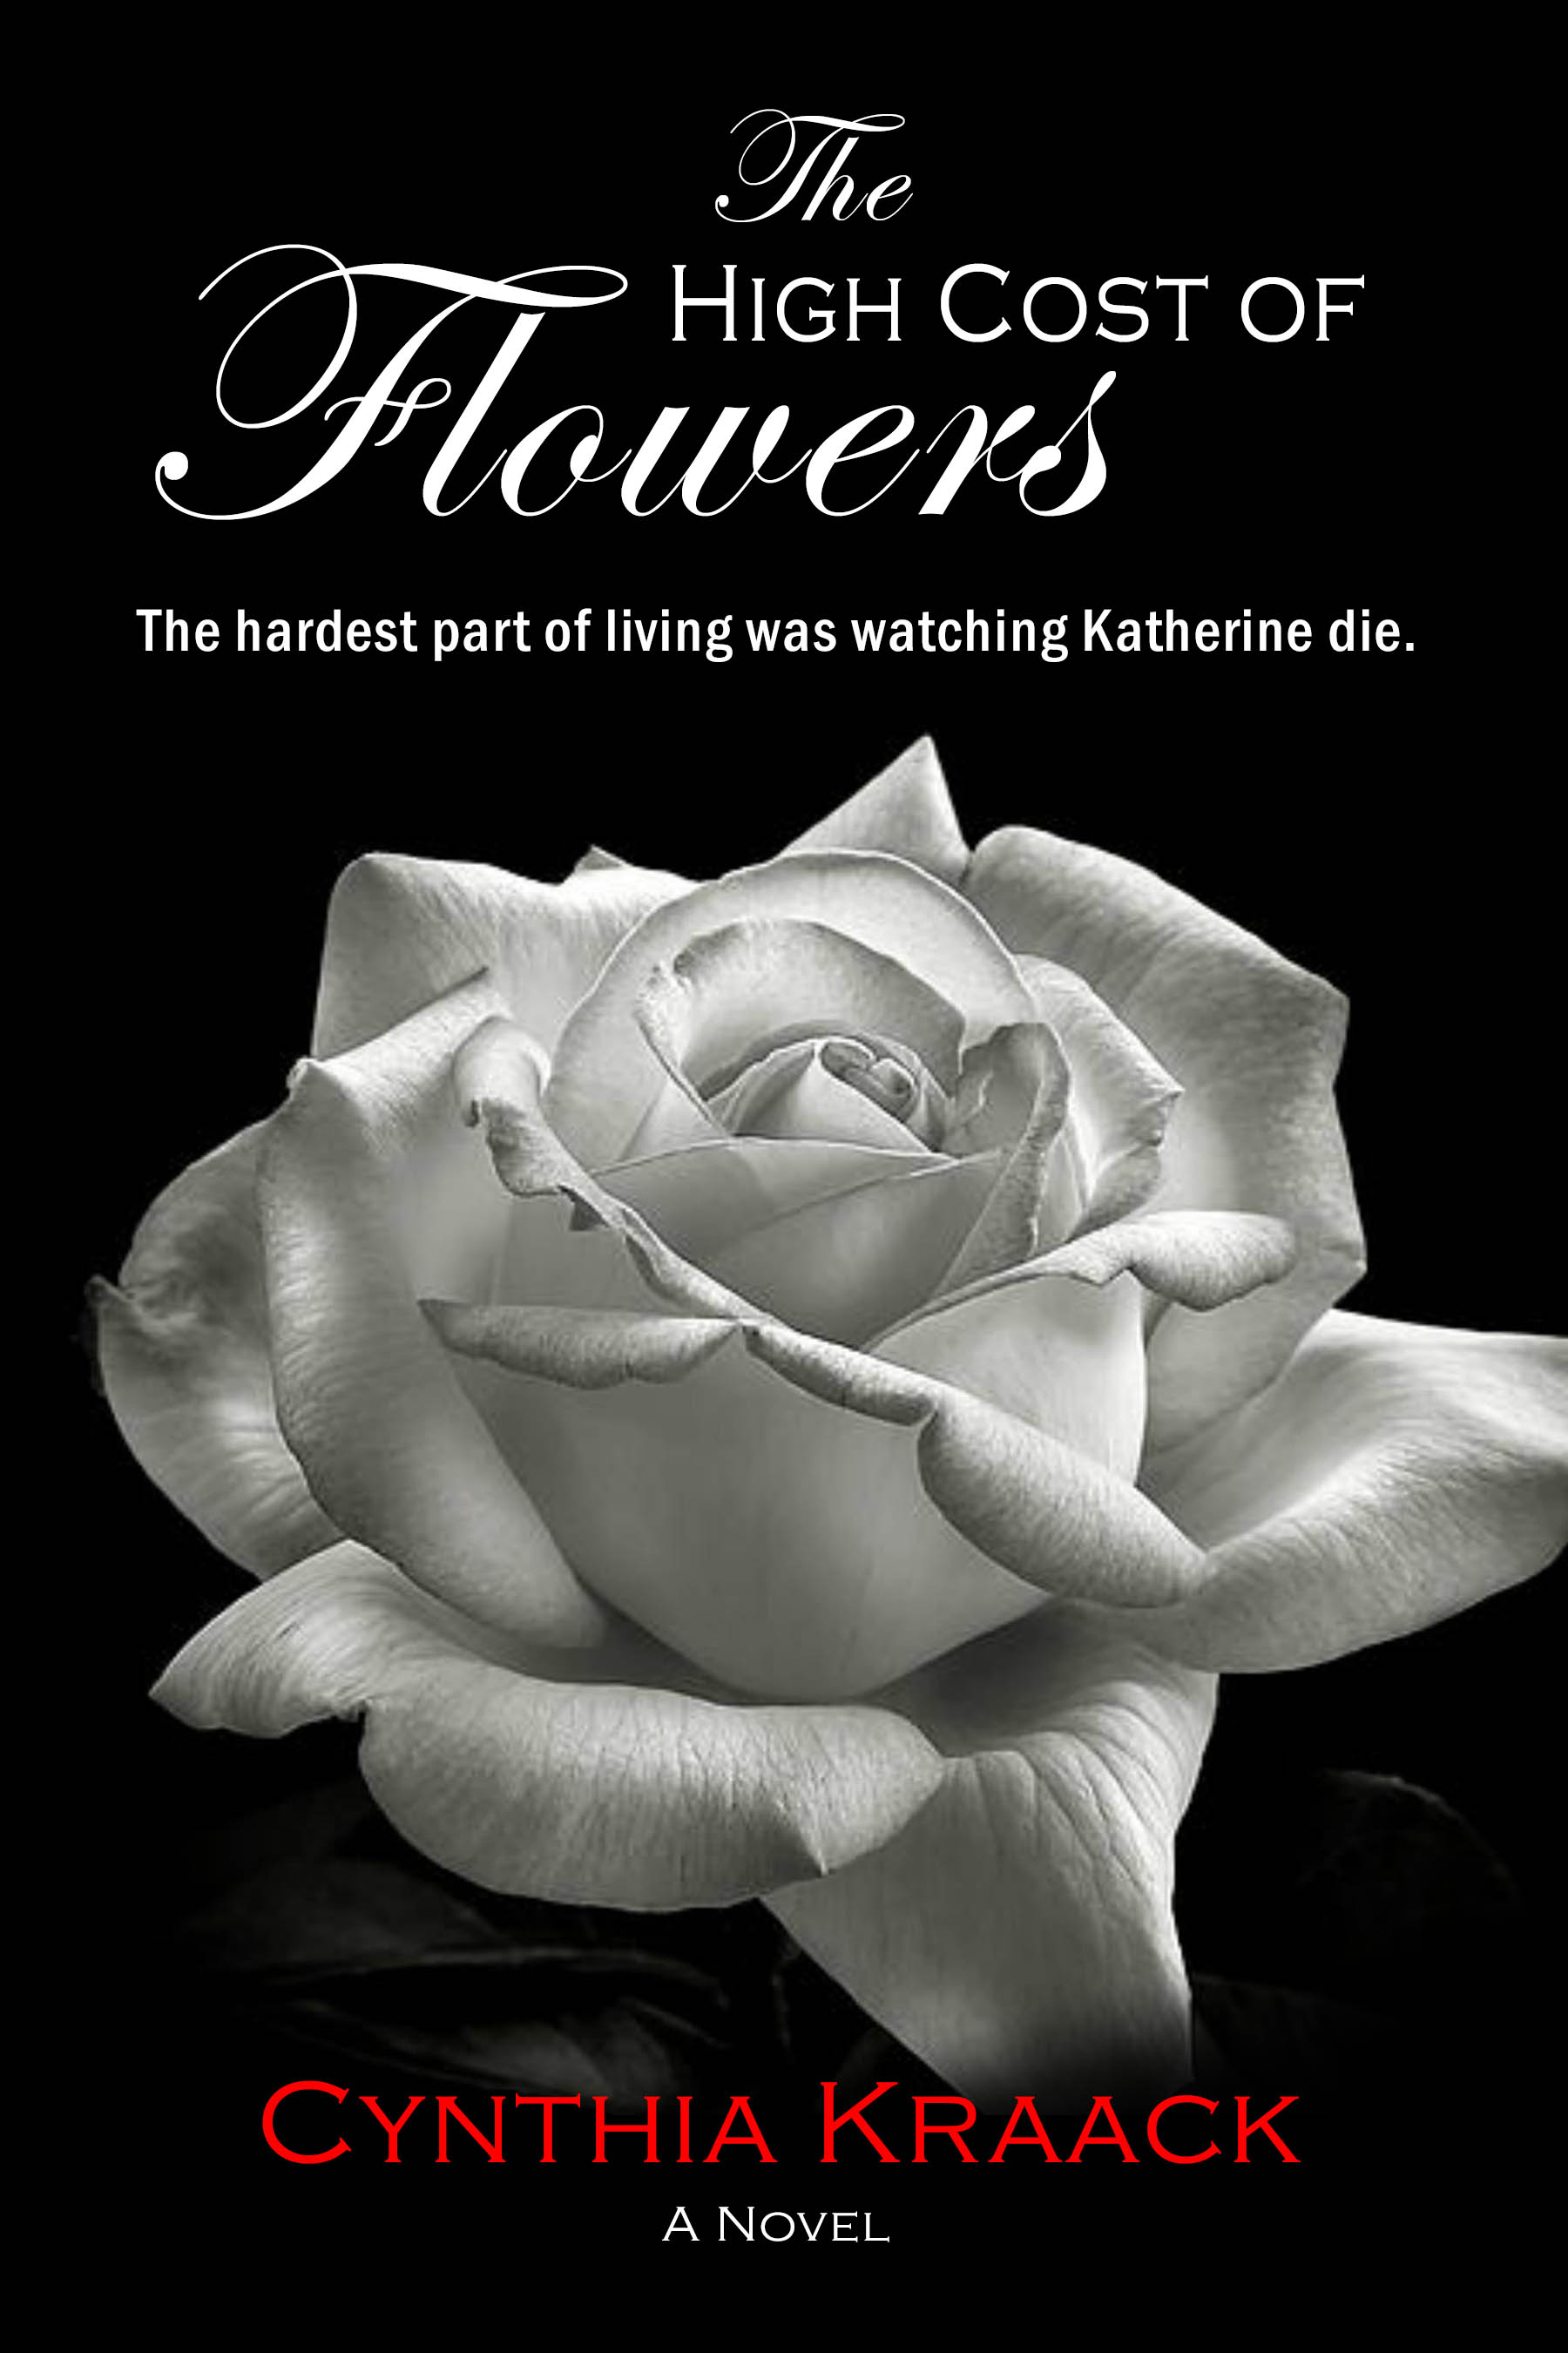 The High Cost of Flowers